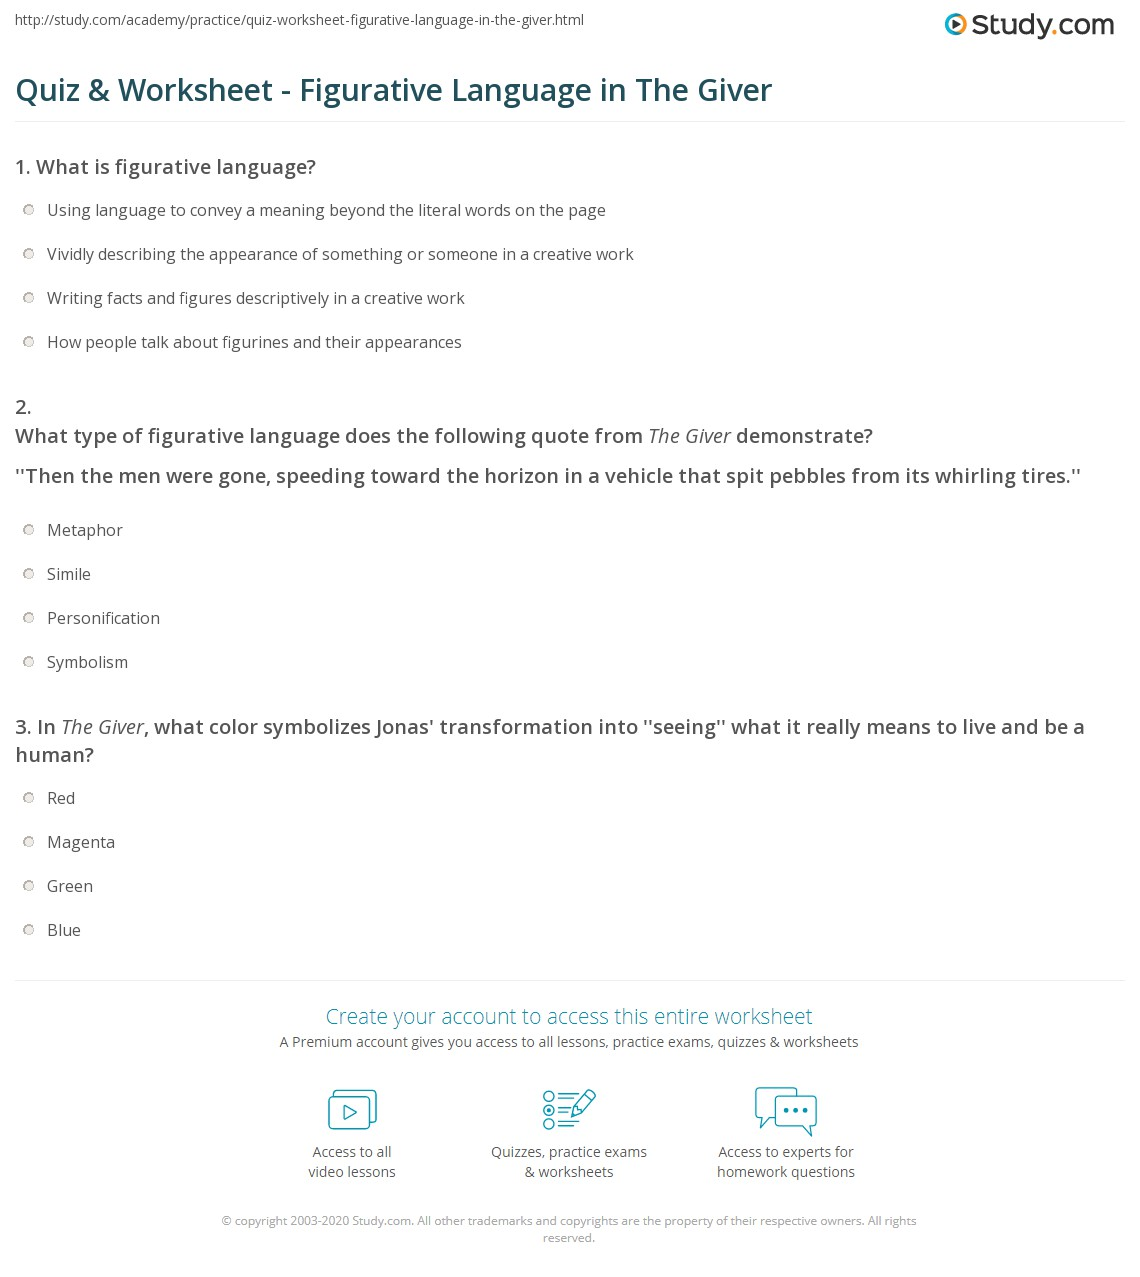 Free Worksheet Figurative Language Worksheets For Middle School – Figurative Language Worksheets for Middle School